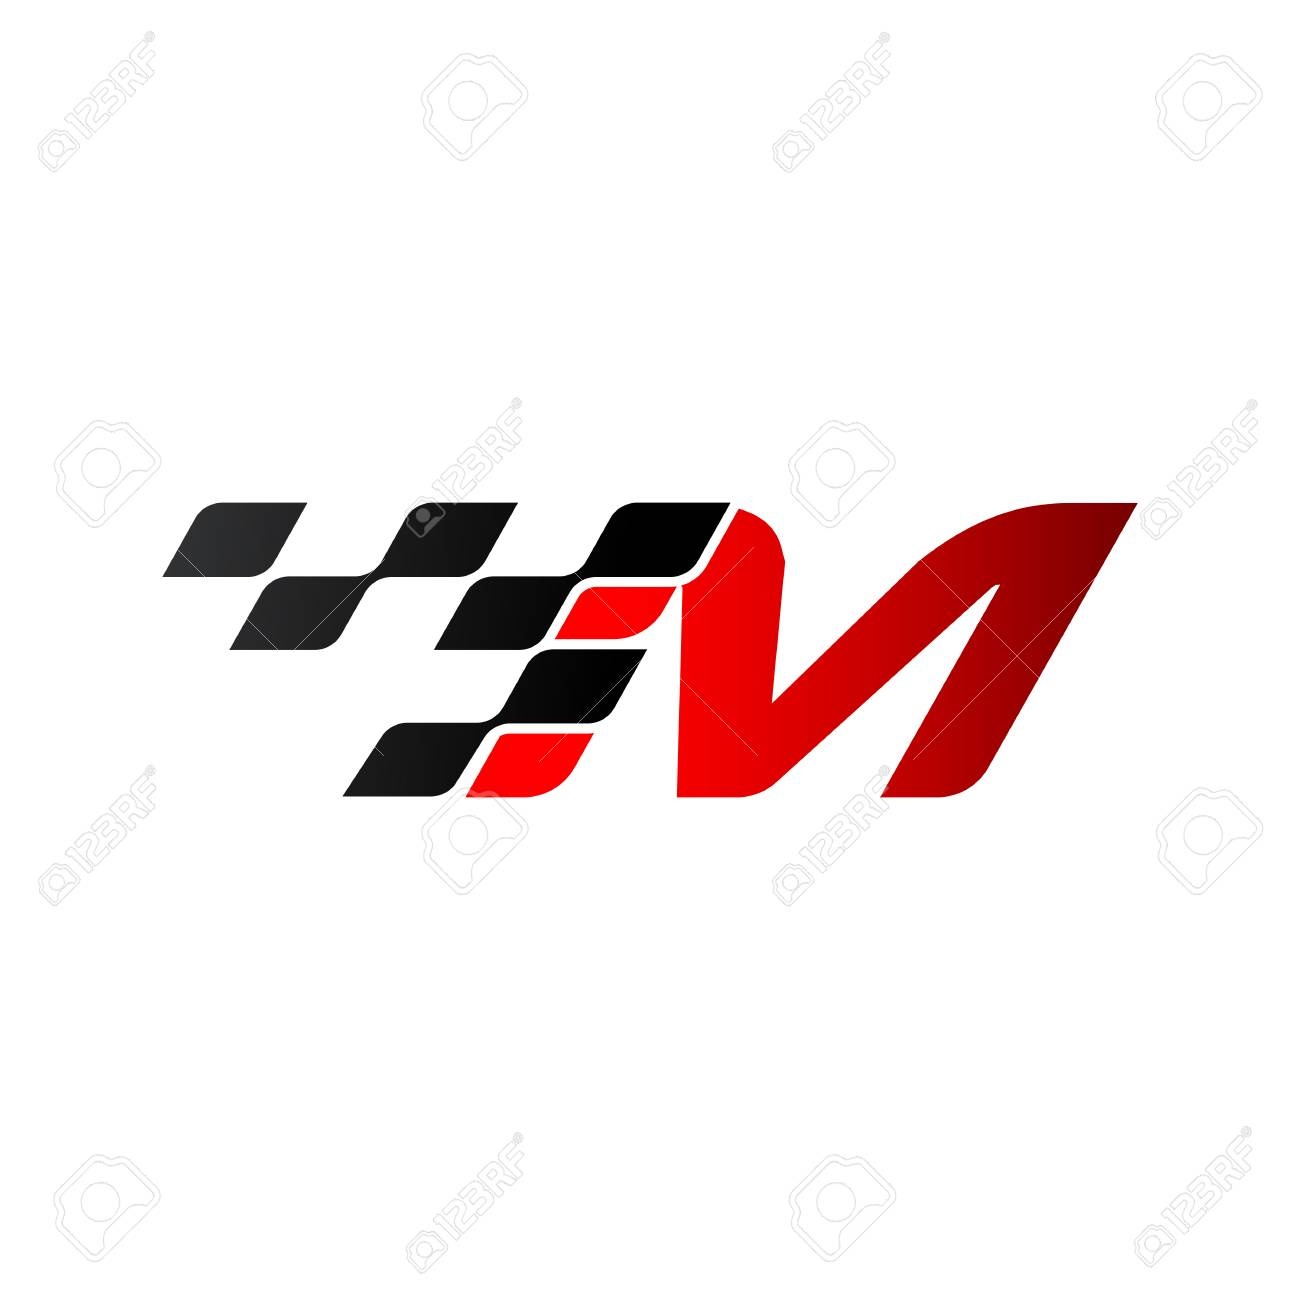 Letter M with racing flag logo - 105838589